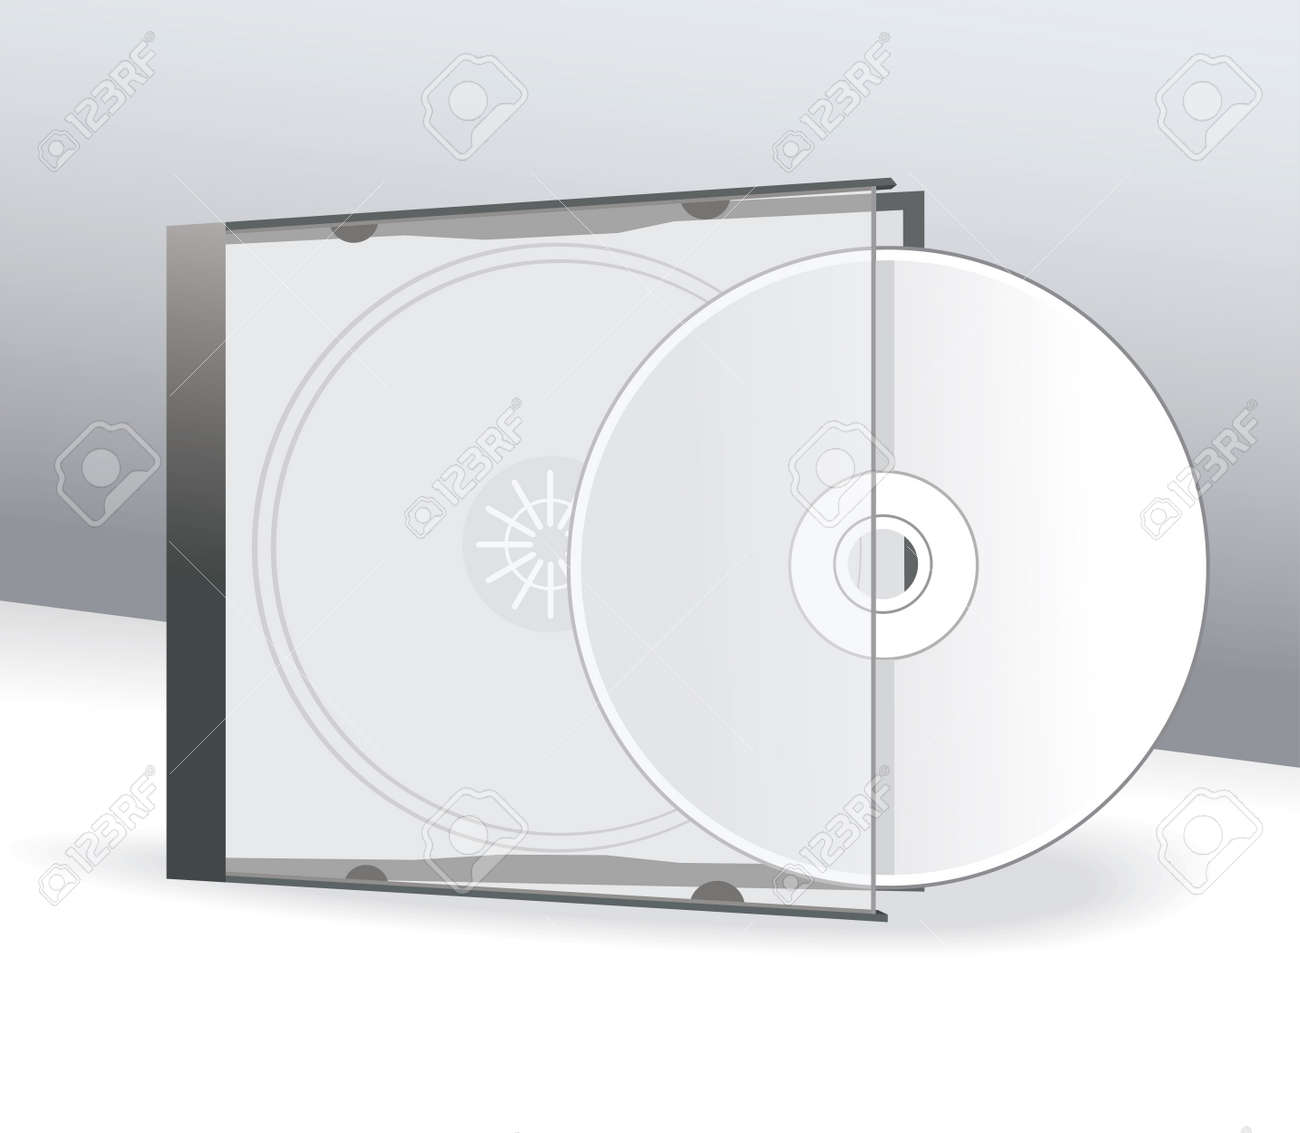 CD Cover Design with 3D Presentation Template Stock Vector - 19246494